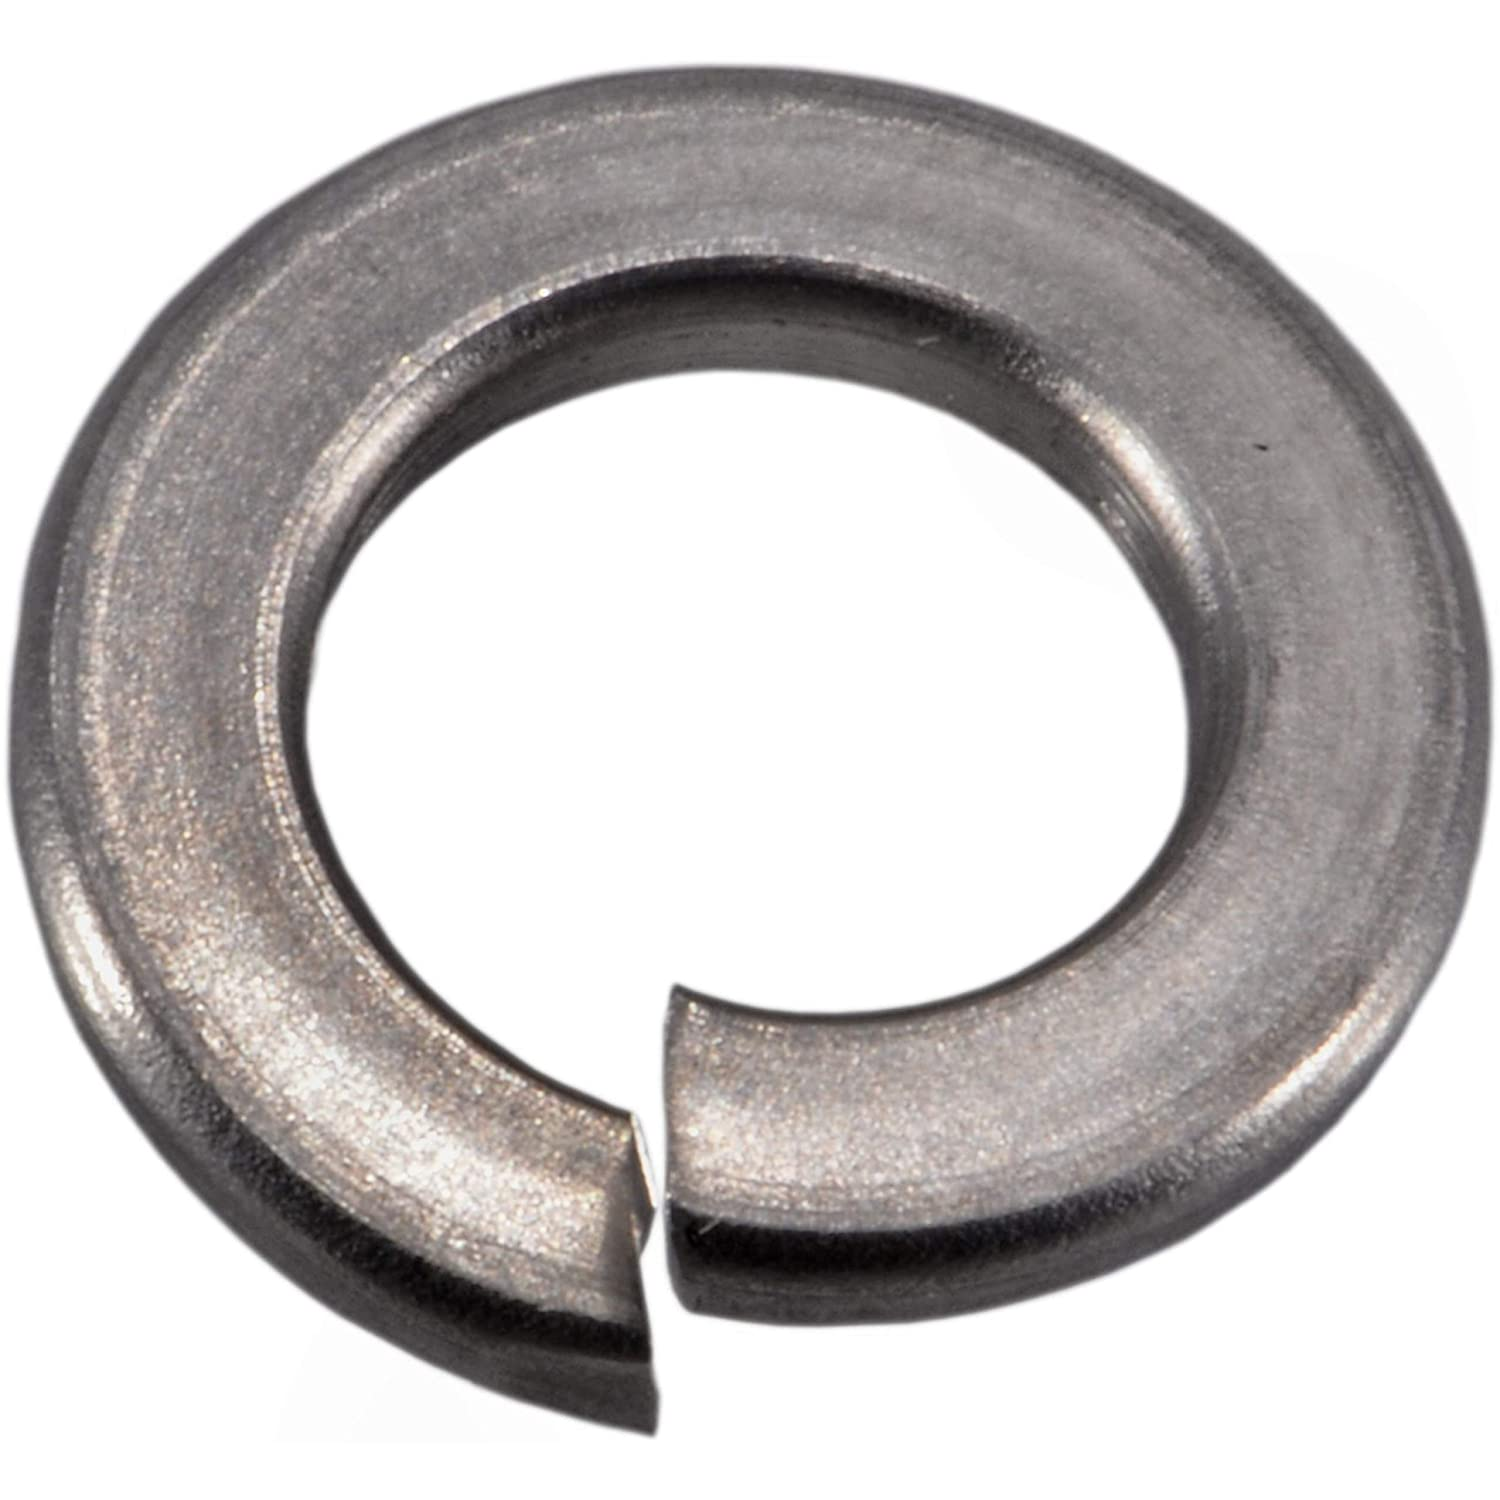 Hard-to-Find Fastener 014973497927 497927 Lock-washers 25 Piece